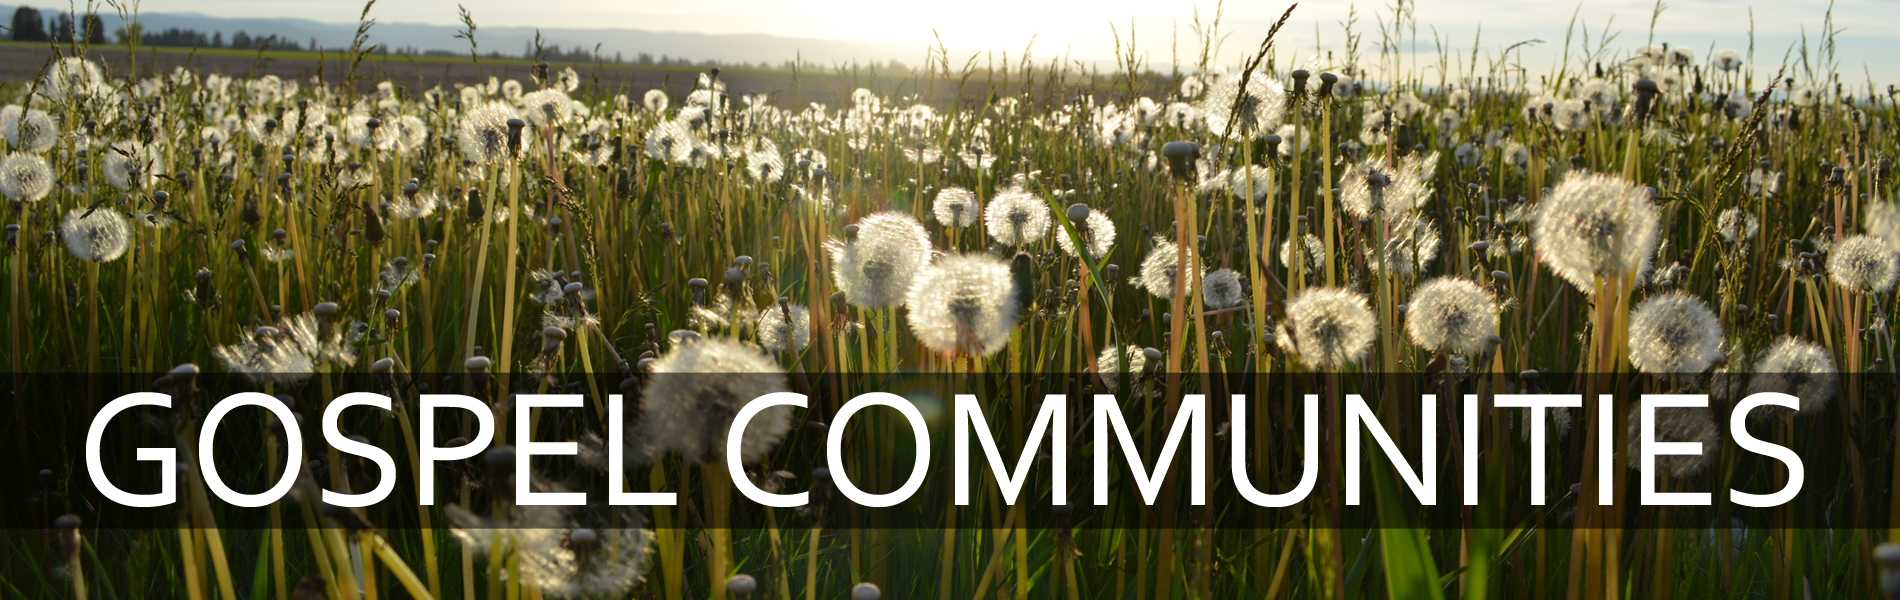 gospel communities